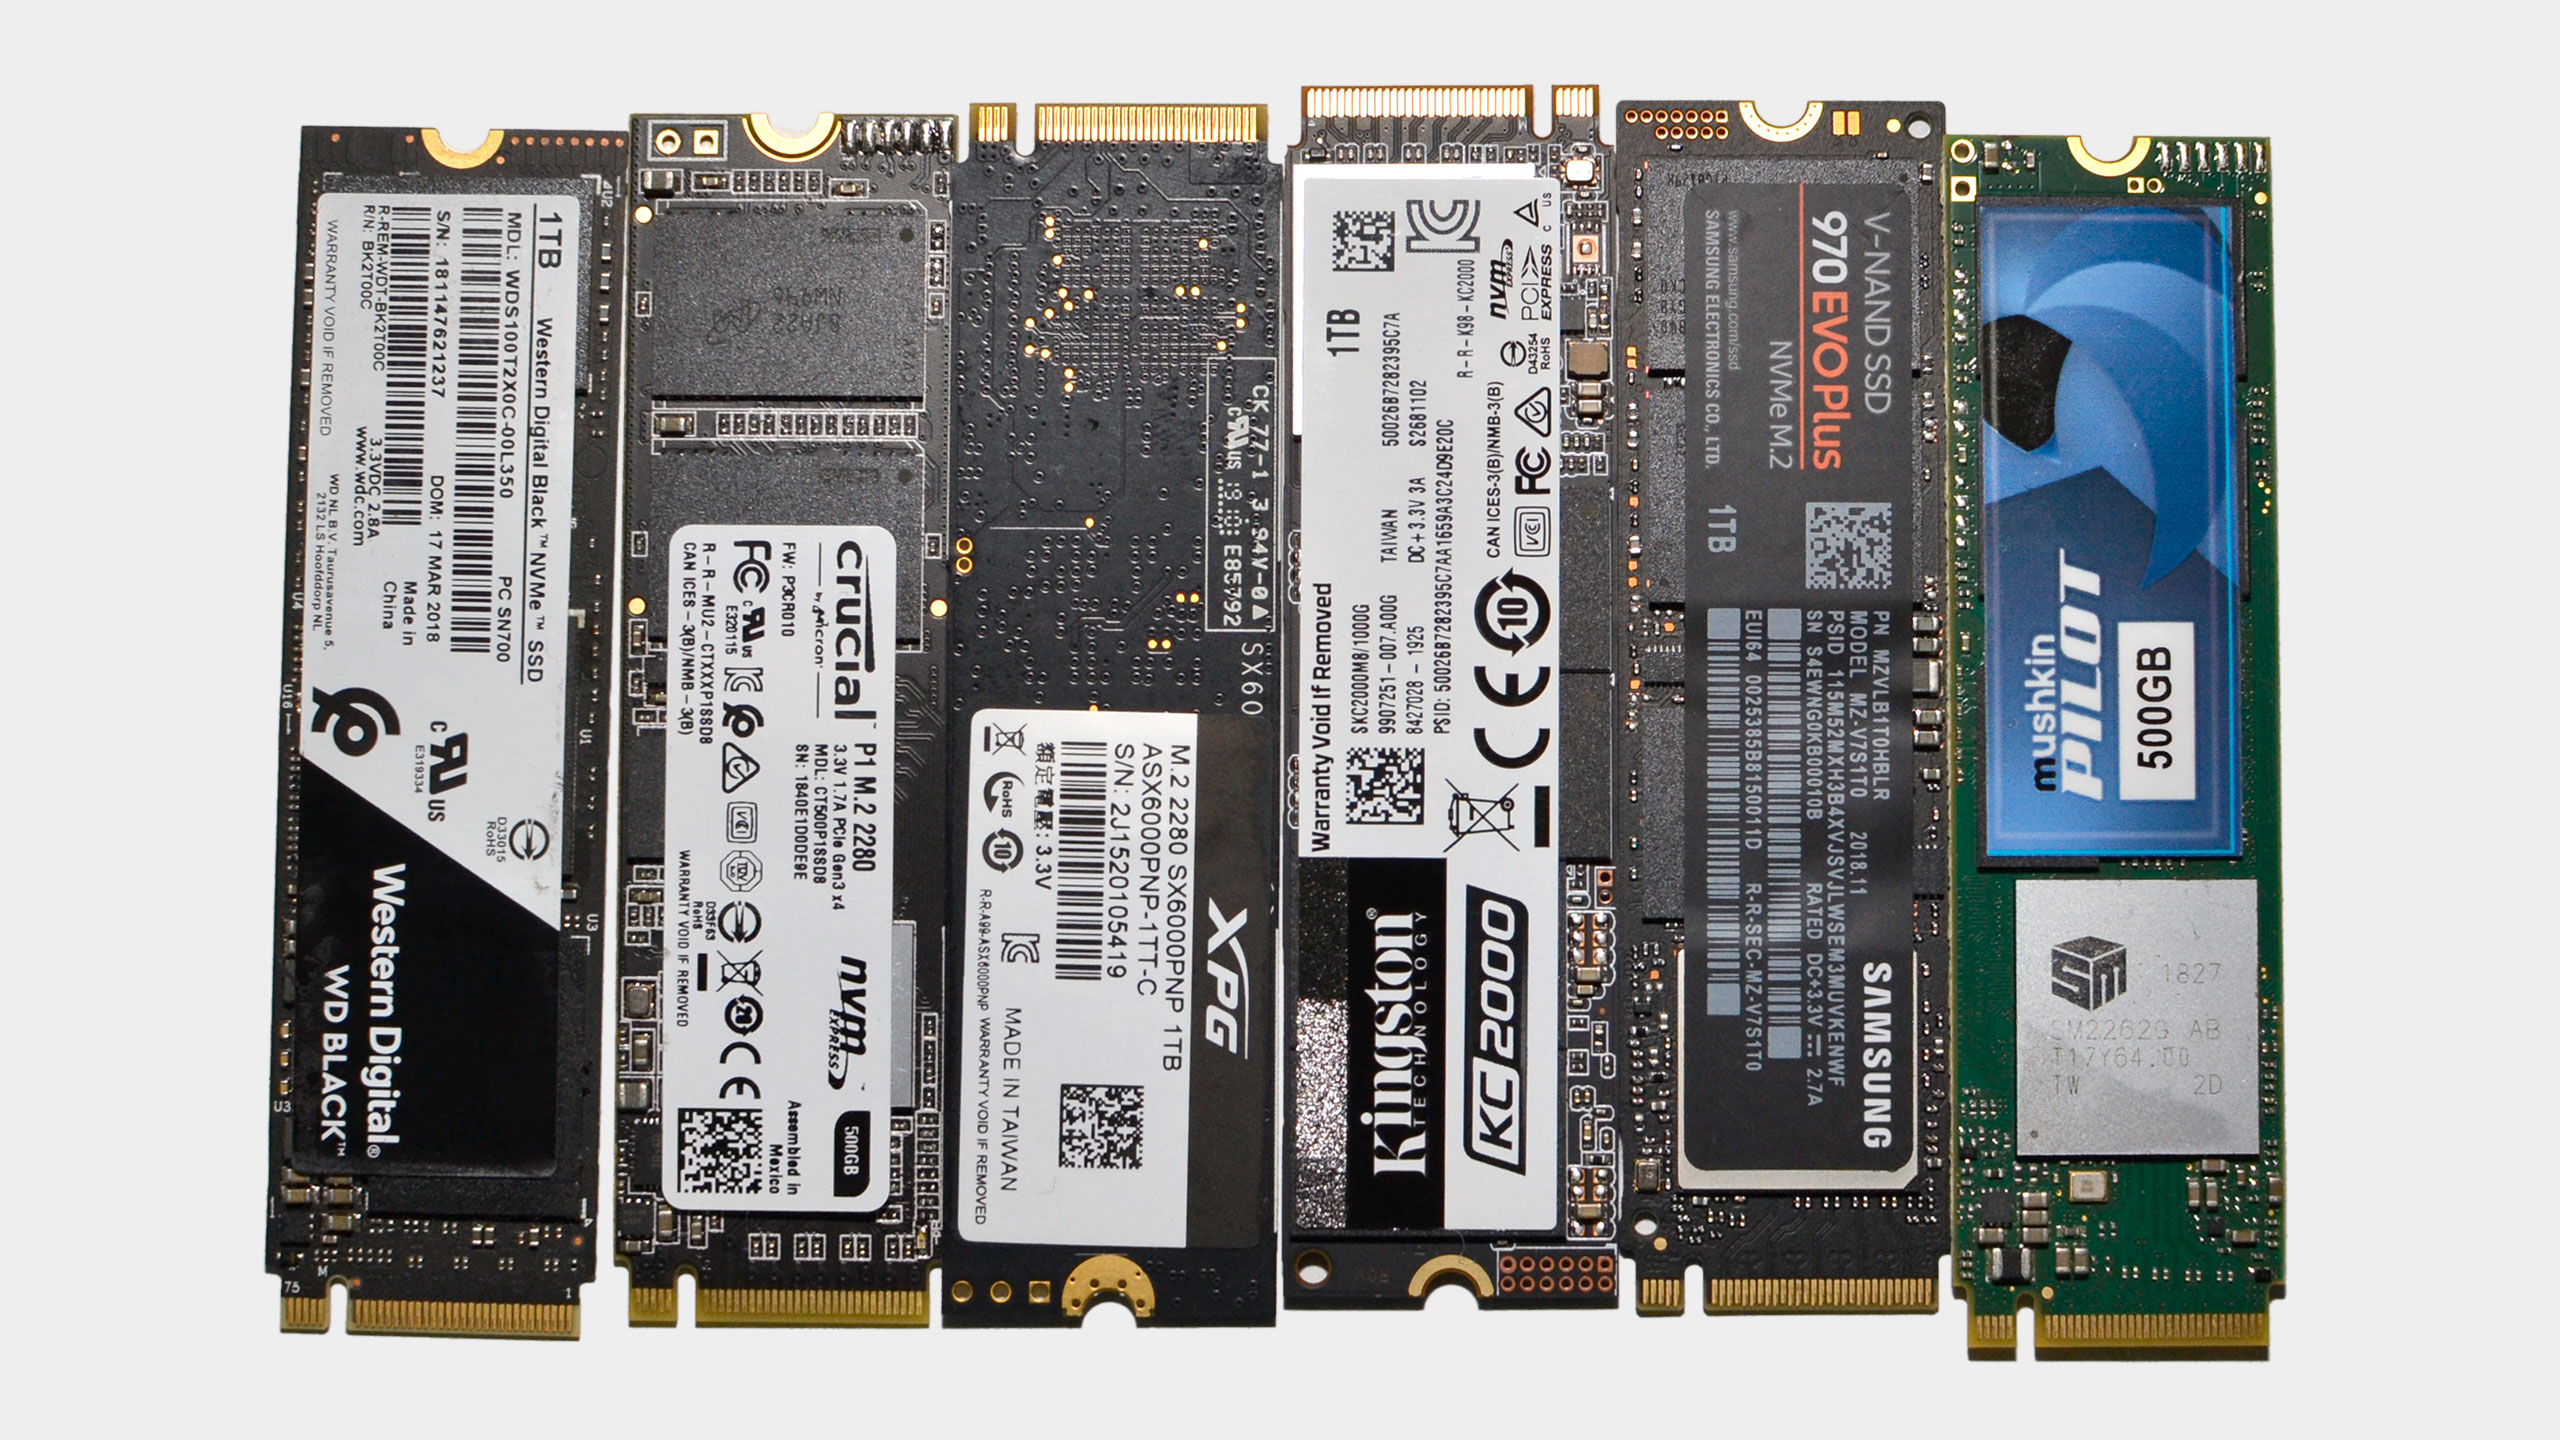 A collection of modern M.2 NVMe SSDs